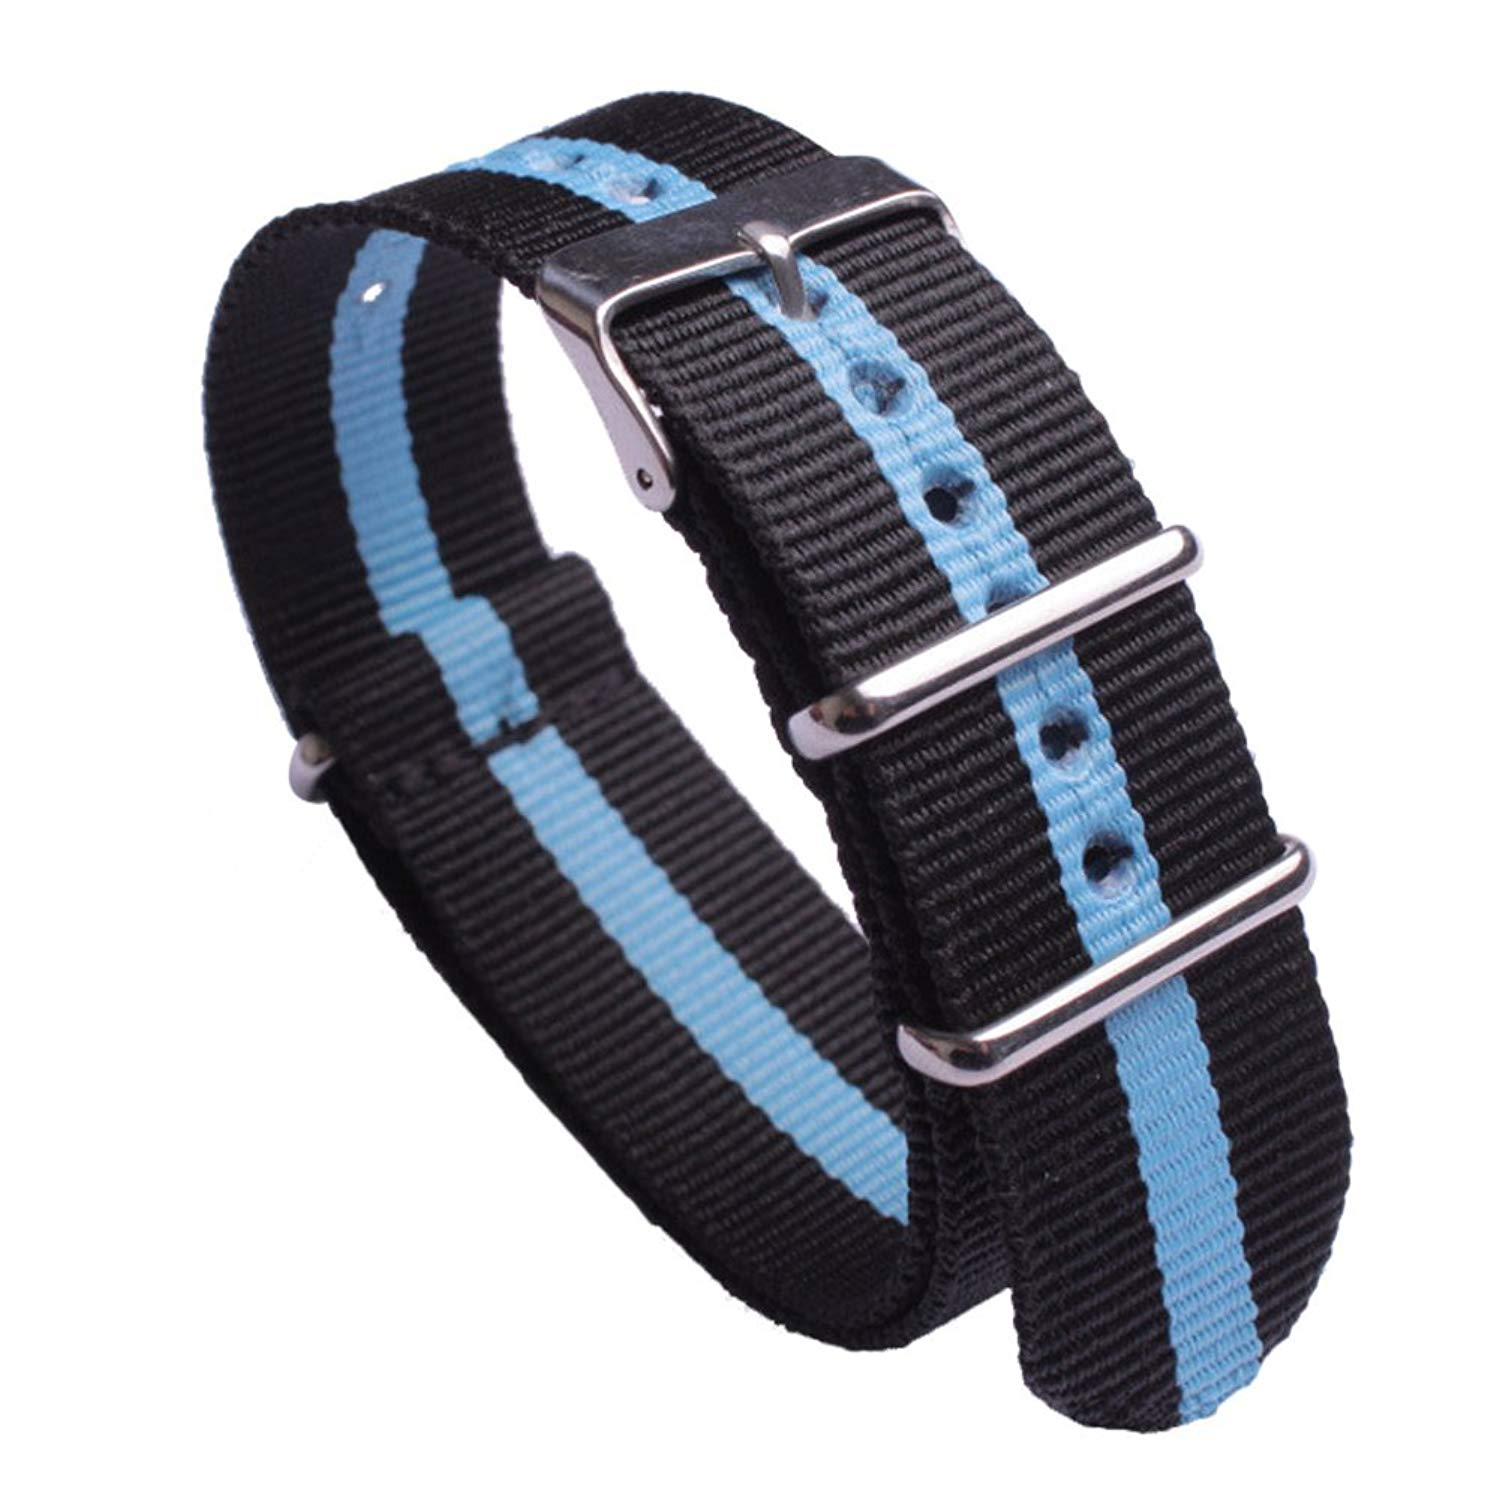 Black and Blue Nylon Watch Strap Regimental NATO Watch Band for Men Wristband Width 18mm 20mm 22mm 24mm